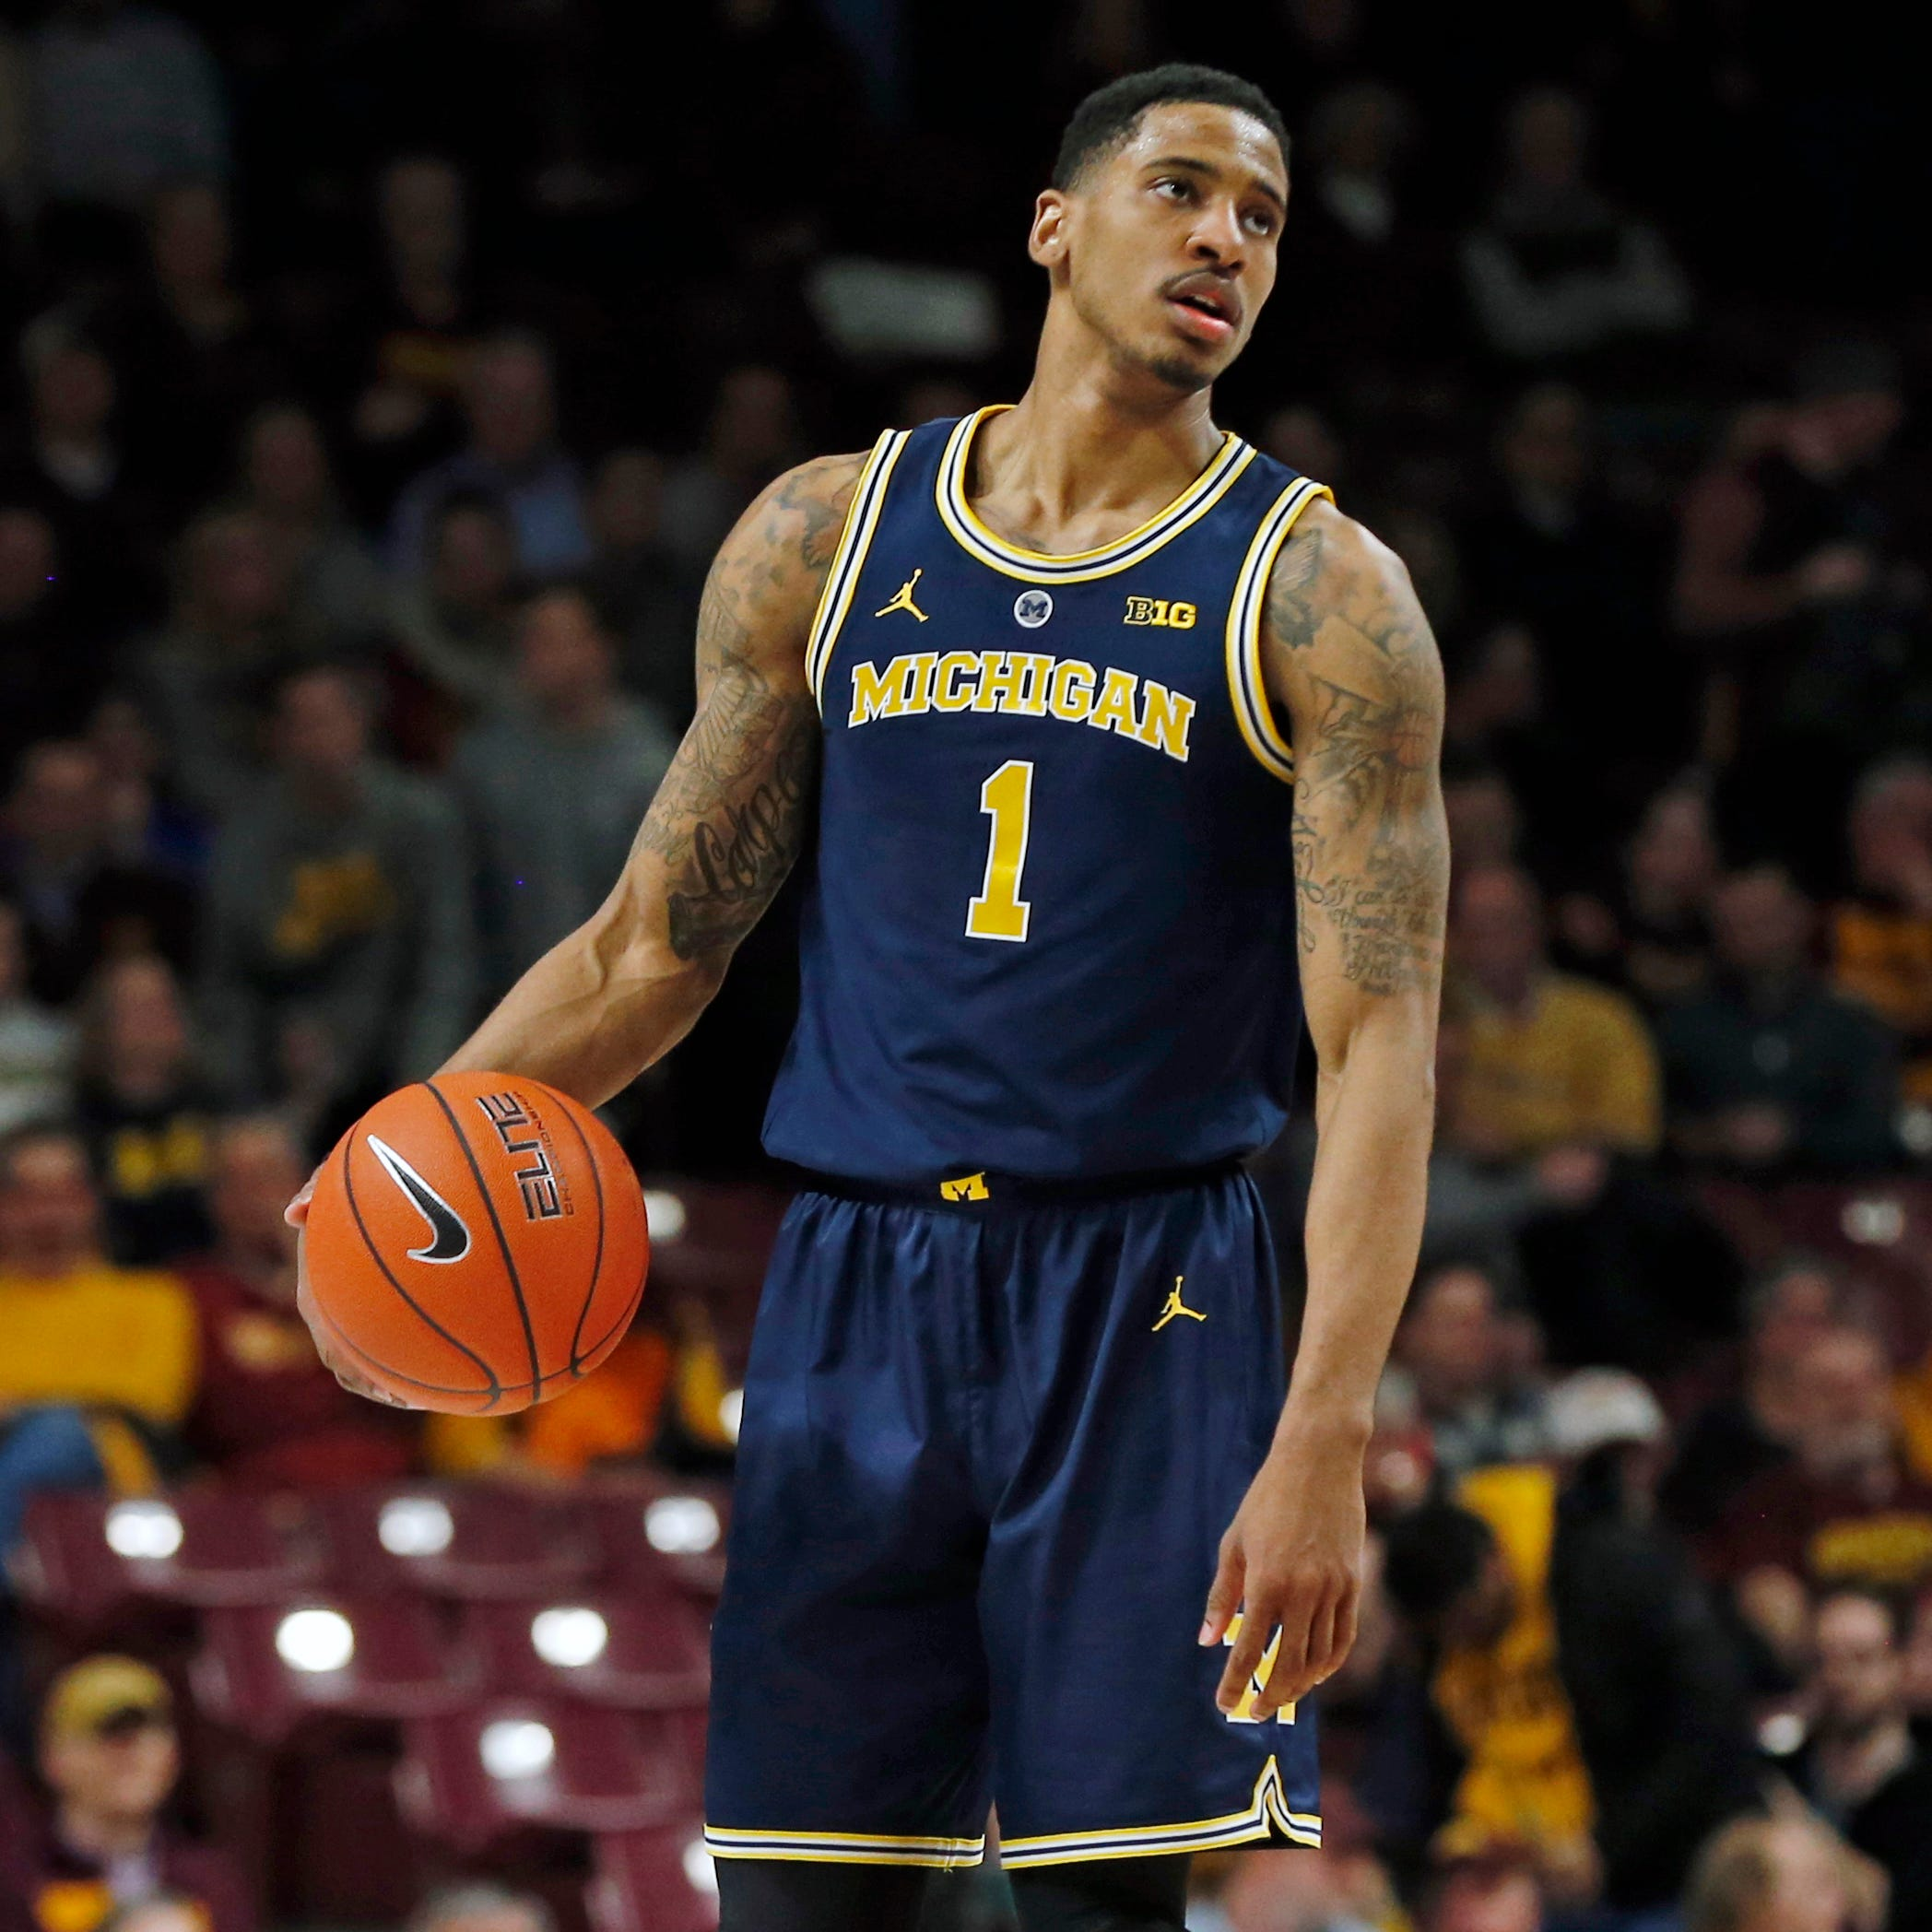 Michigan's Charles Matthews 'feeling better, anxious to play' but not 100 percent